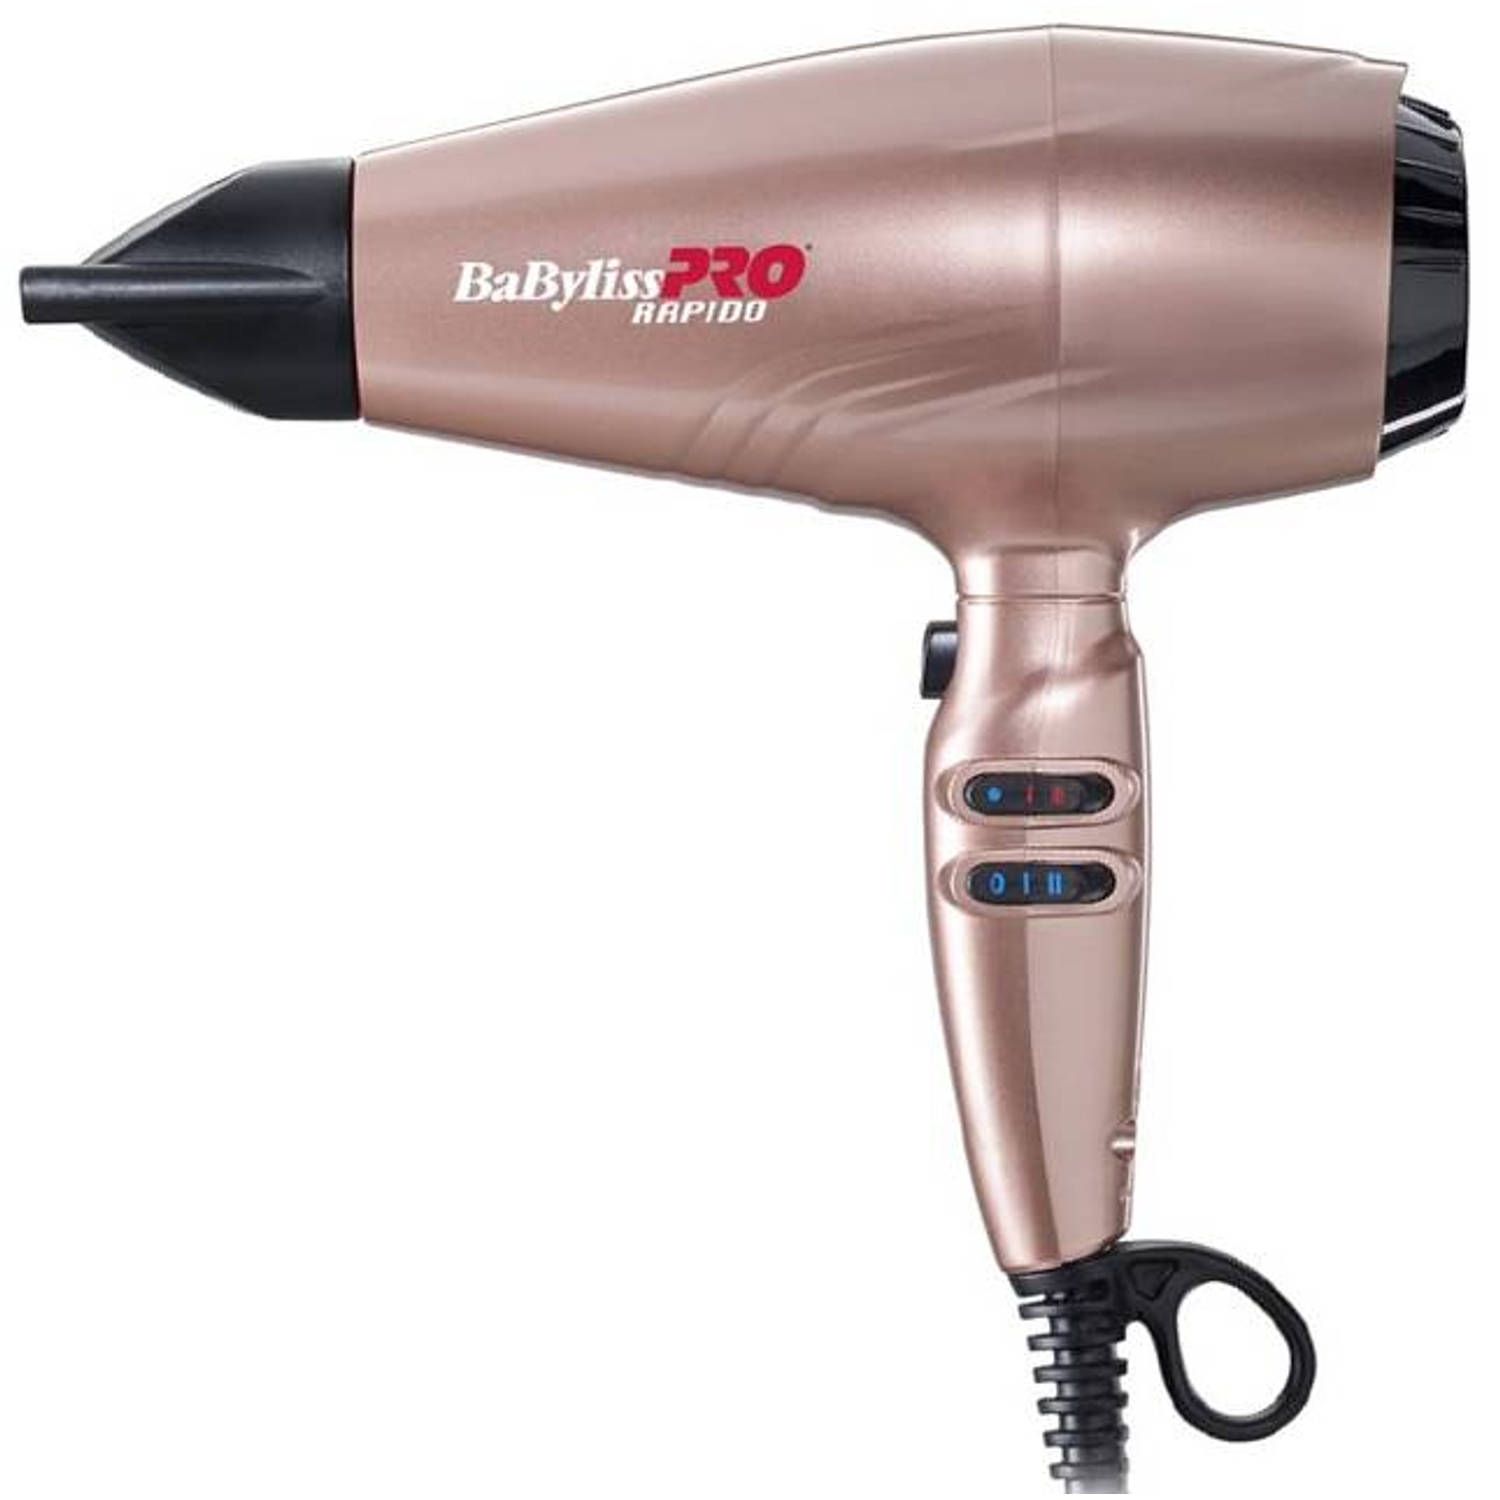 Afbeelding van BaByliss PRO Fohn Rapido BAB7000IRGE Limited Edition - 499